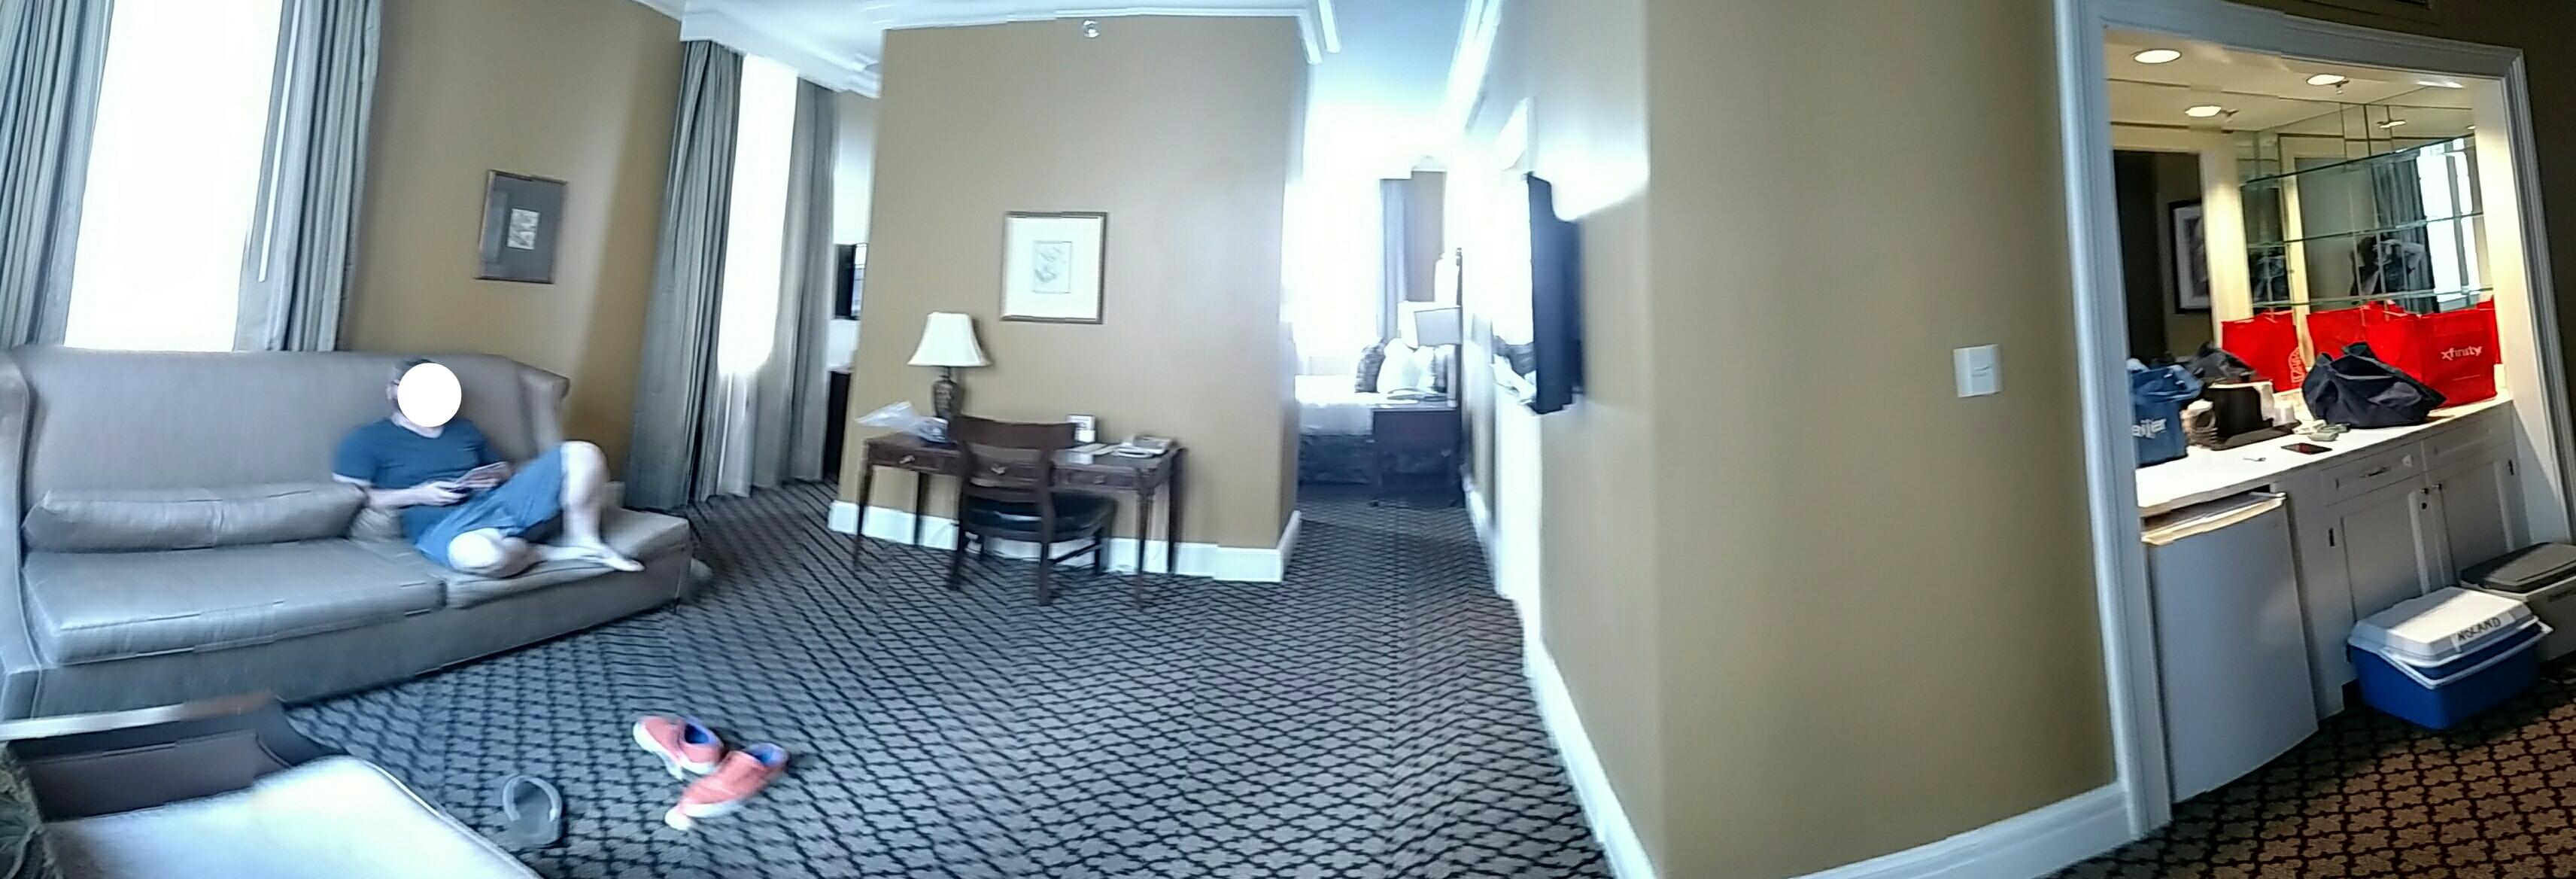 Two room suite.